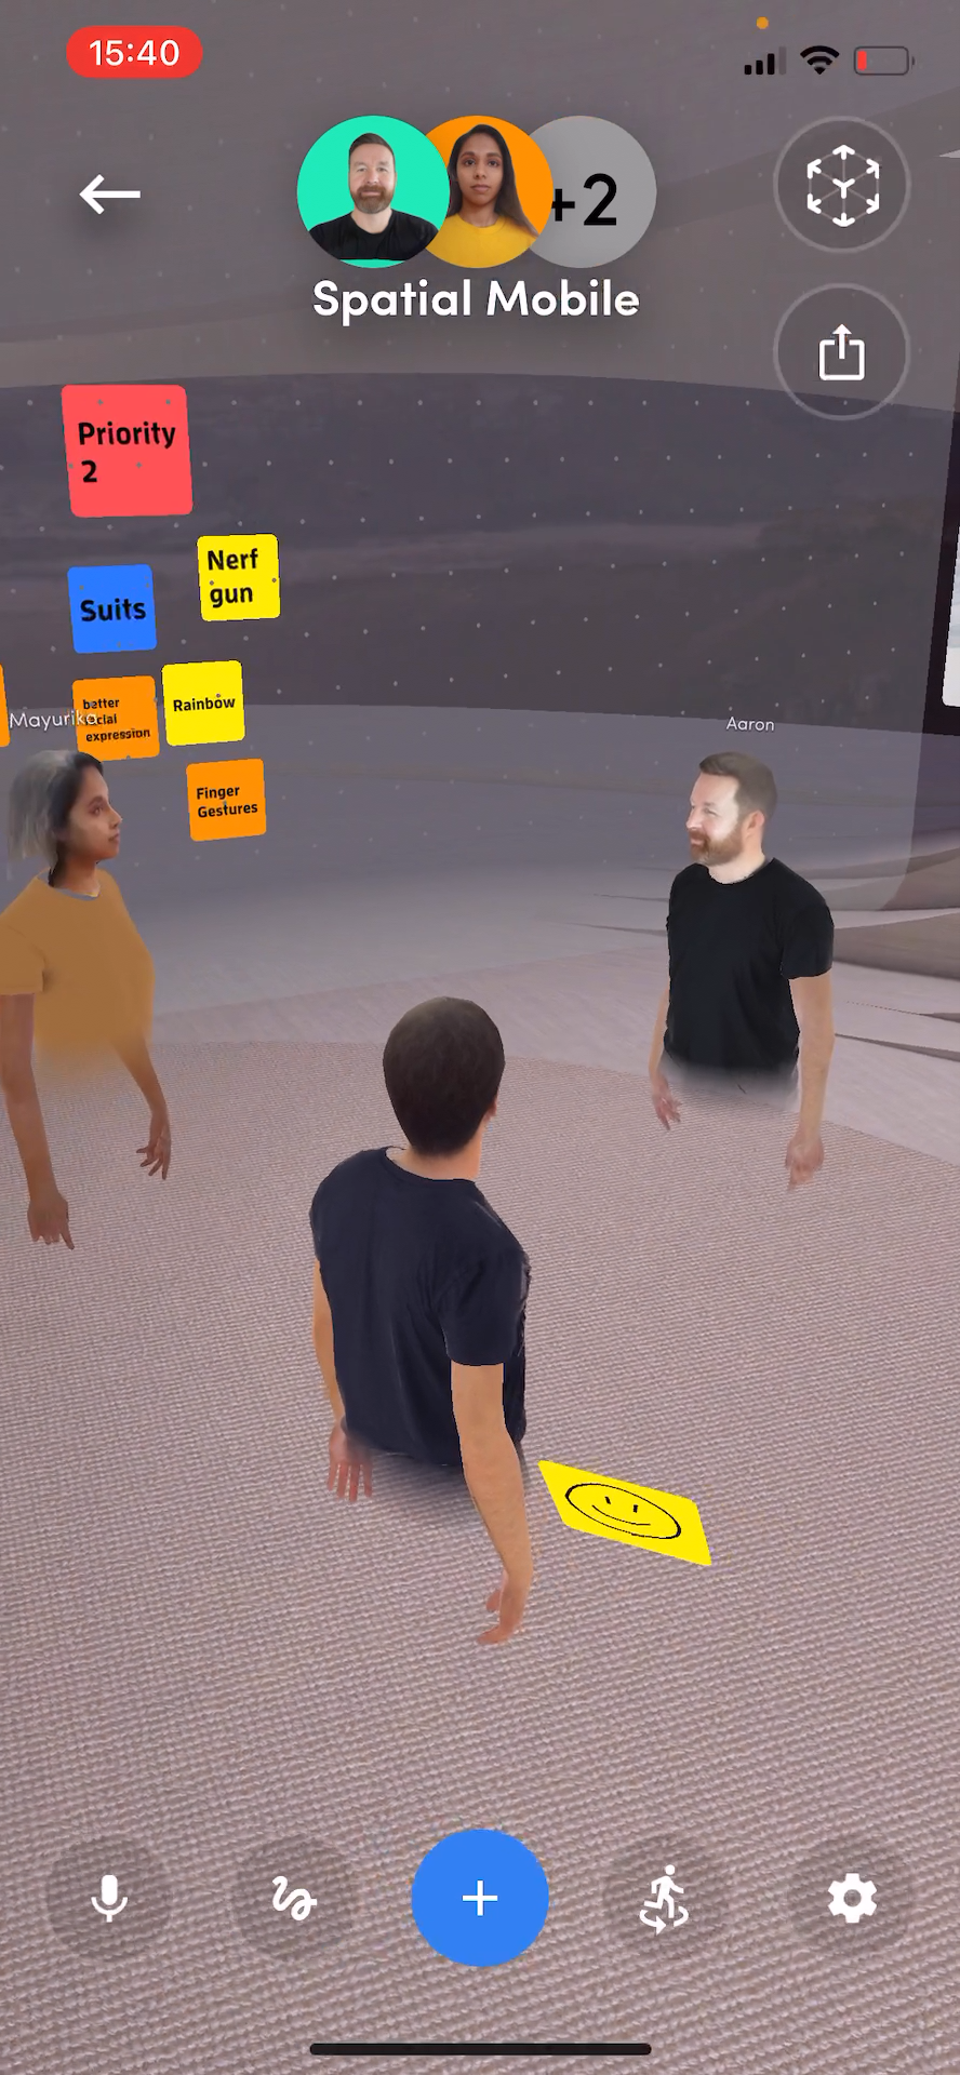 Smartphone users can move around the room as if virtually present in the meeting with other avatars. SPATIAL